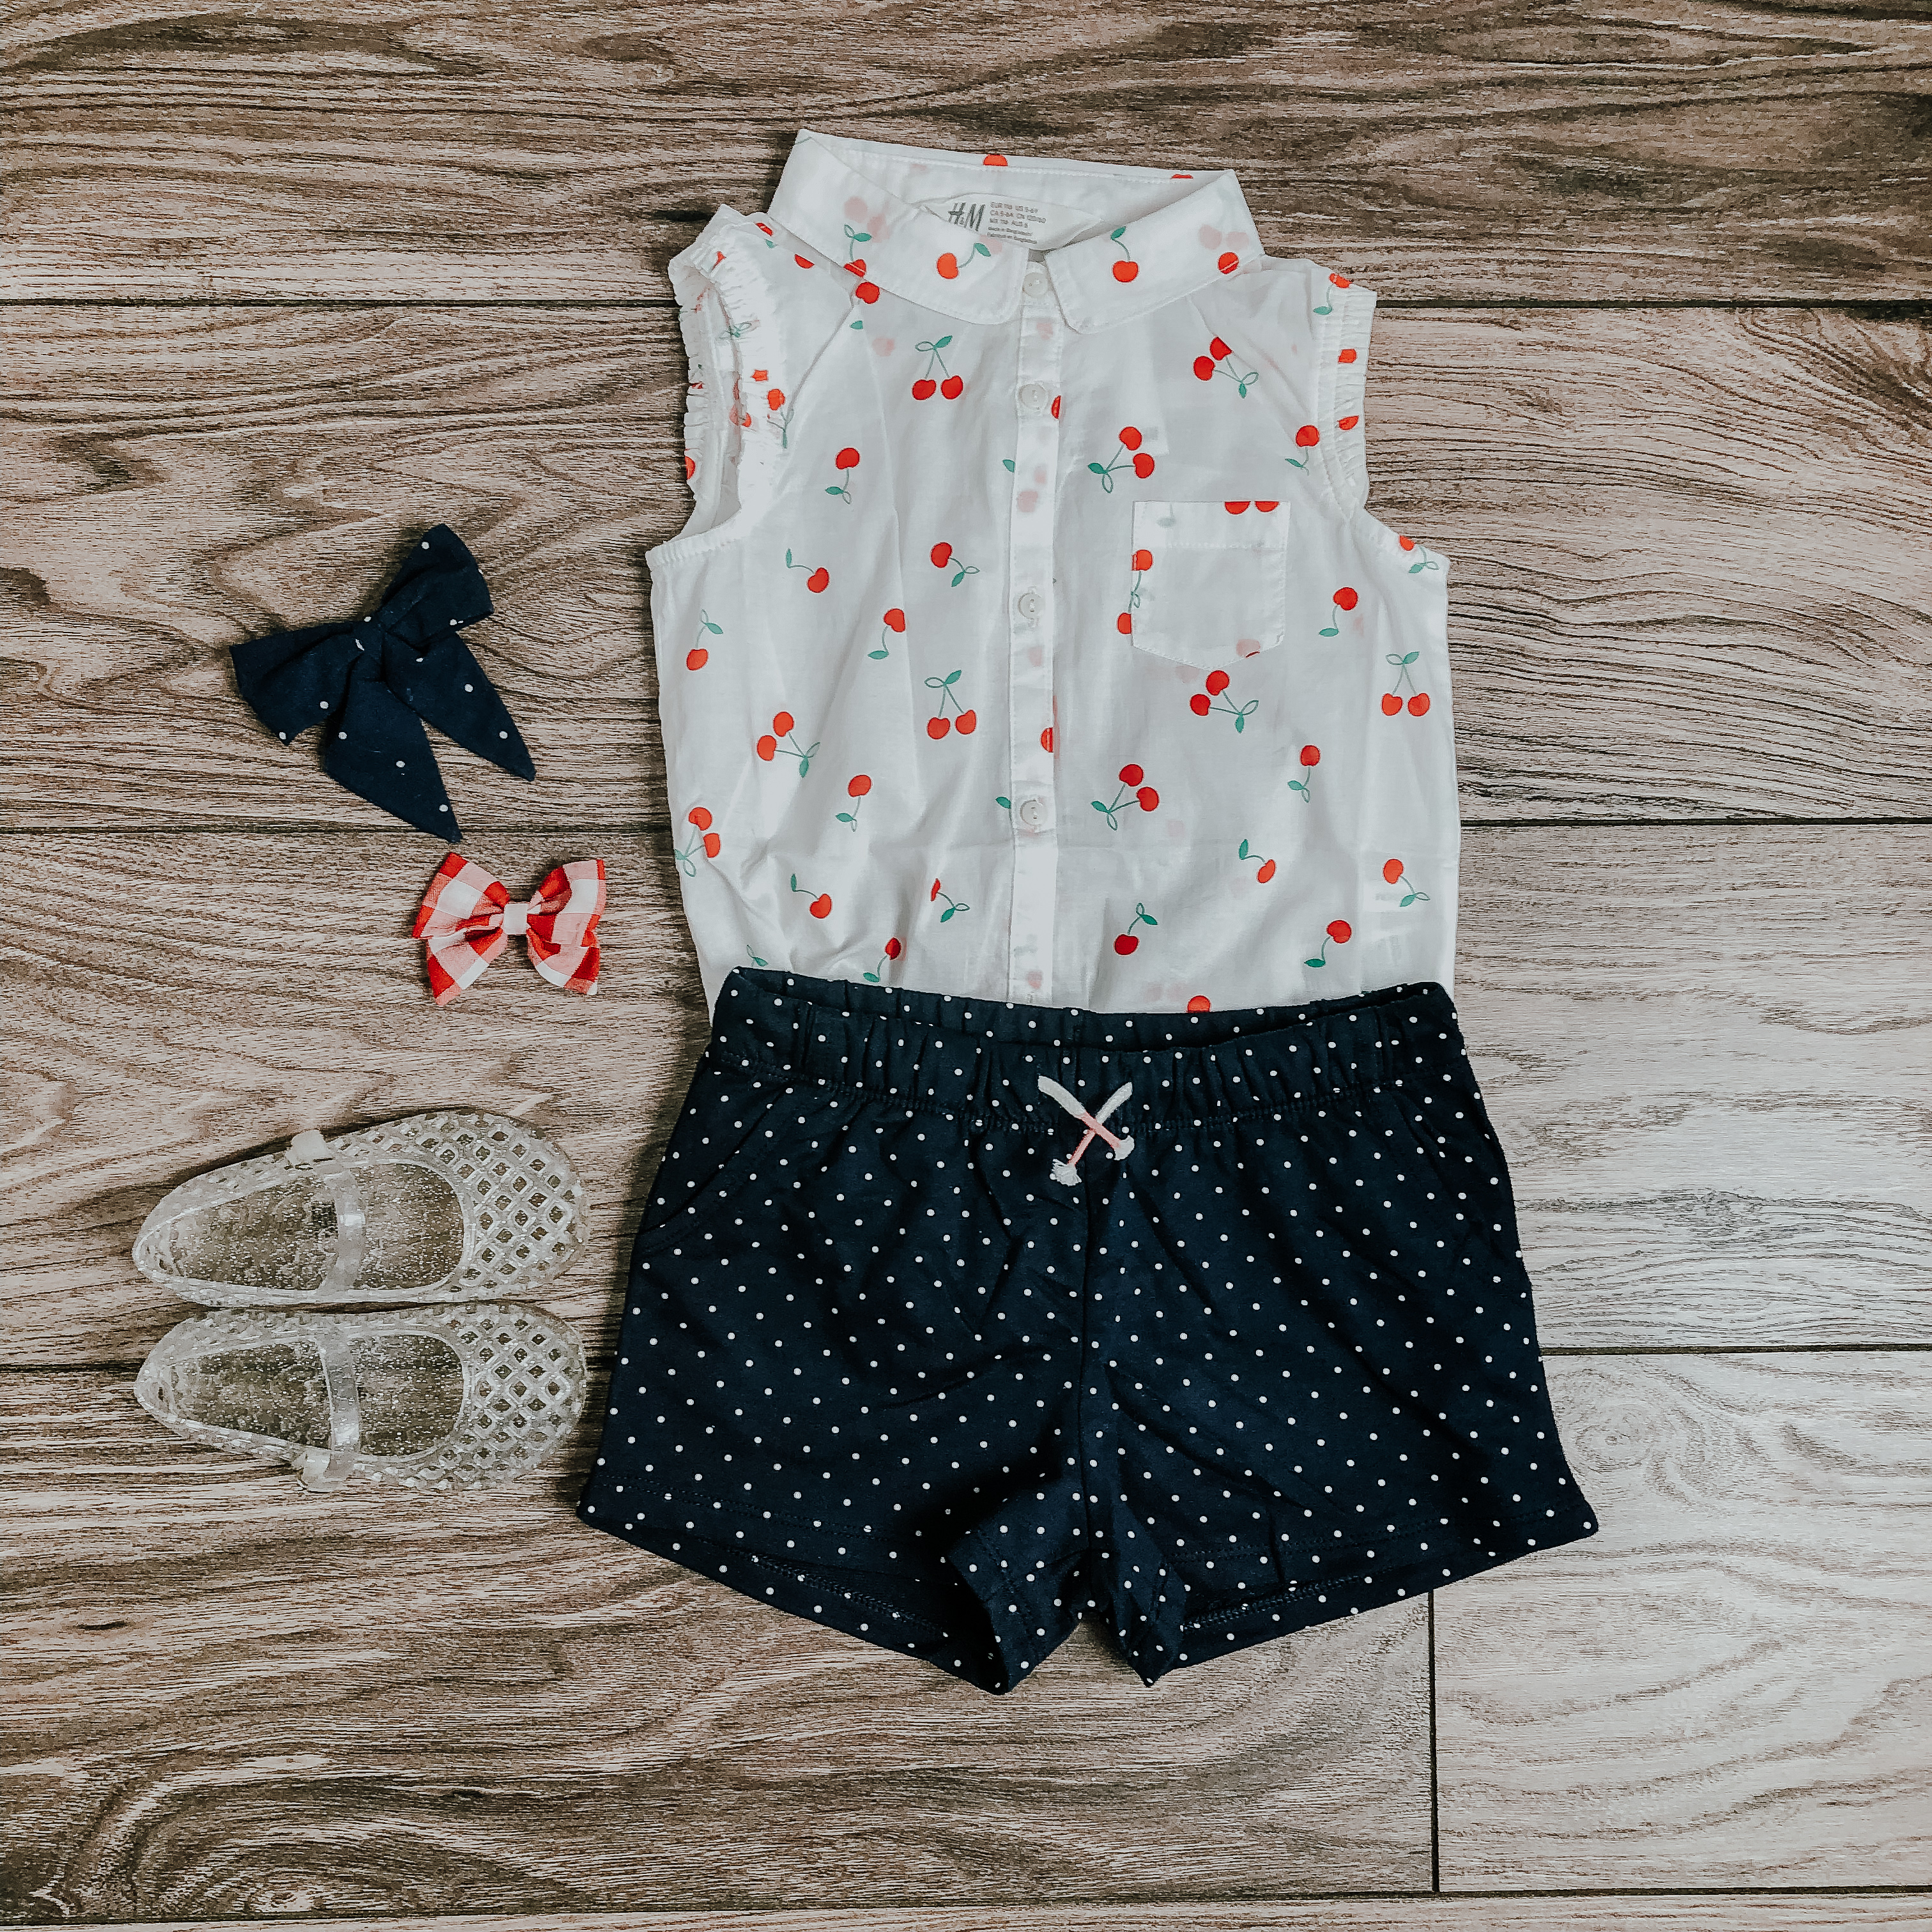 Outfits for little girls